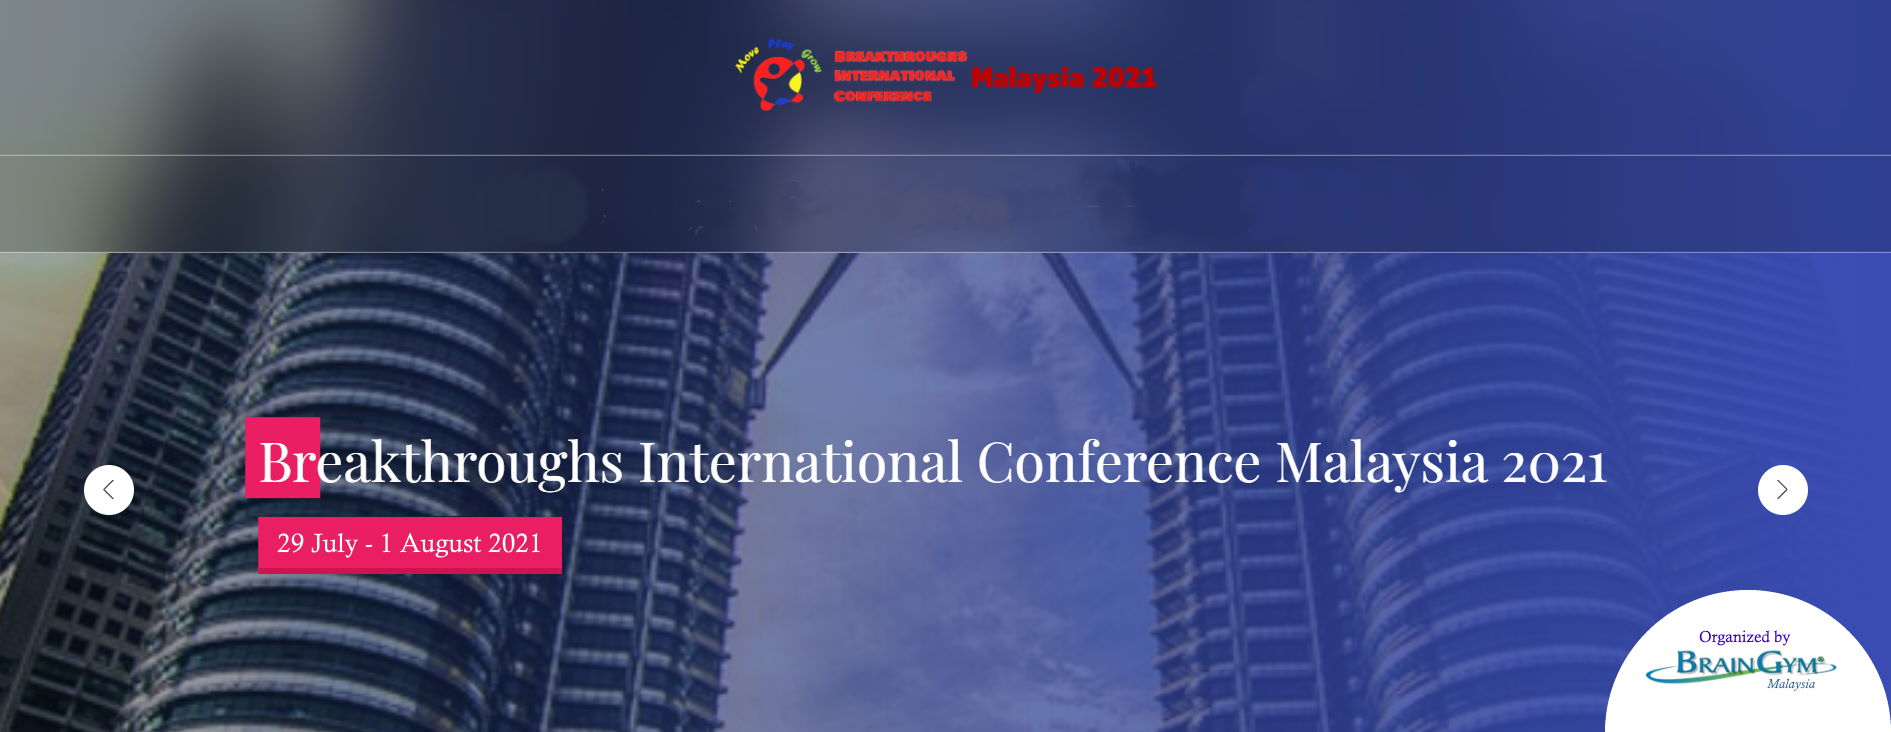 First Virtual Breakthroughs International Conference Malaysia 2021